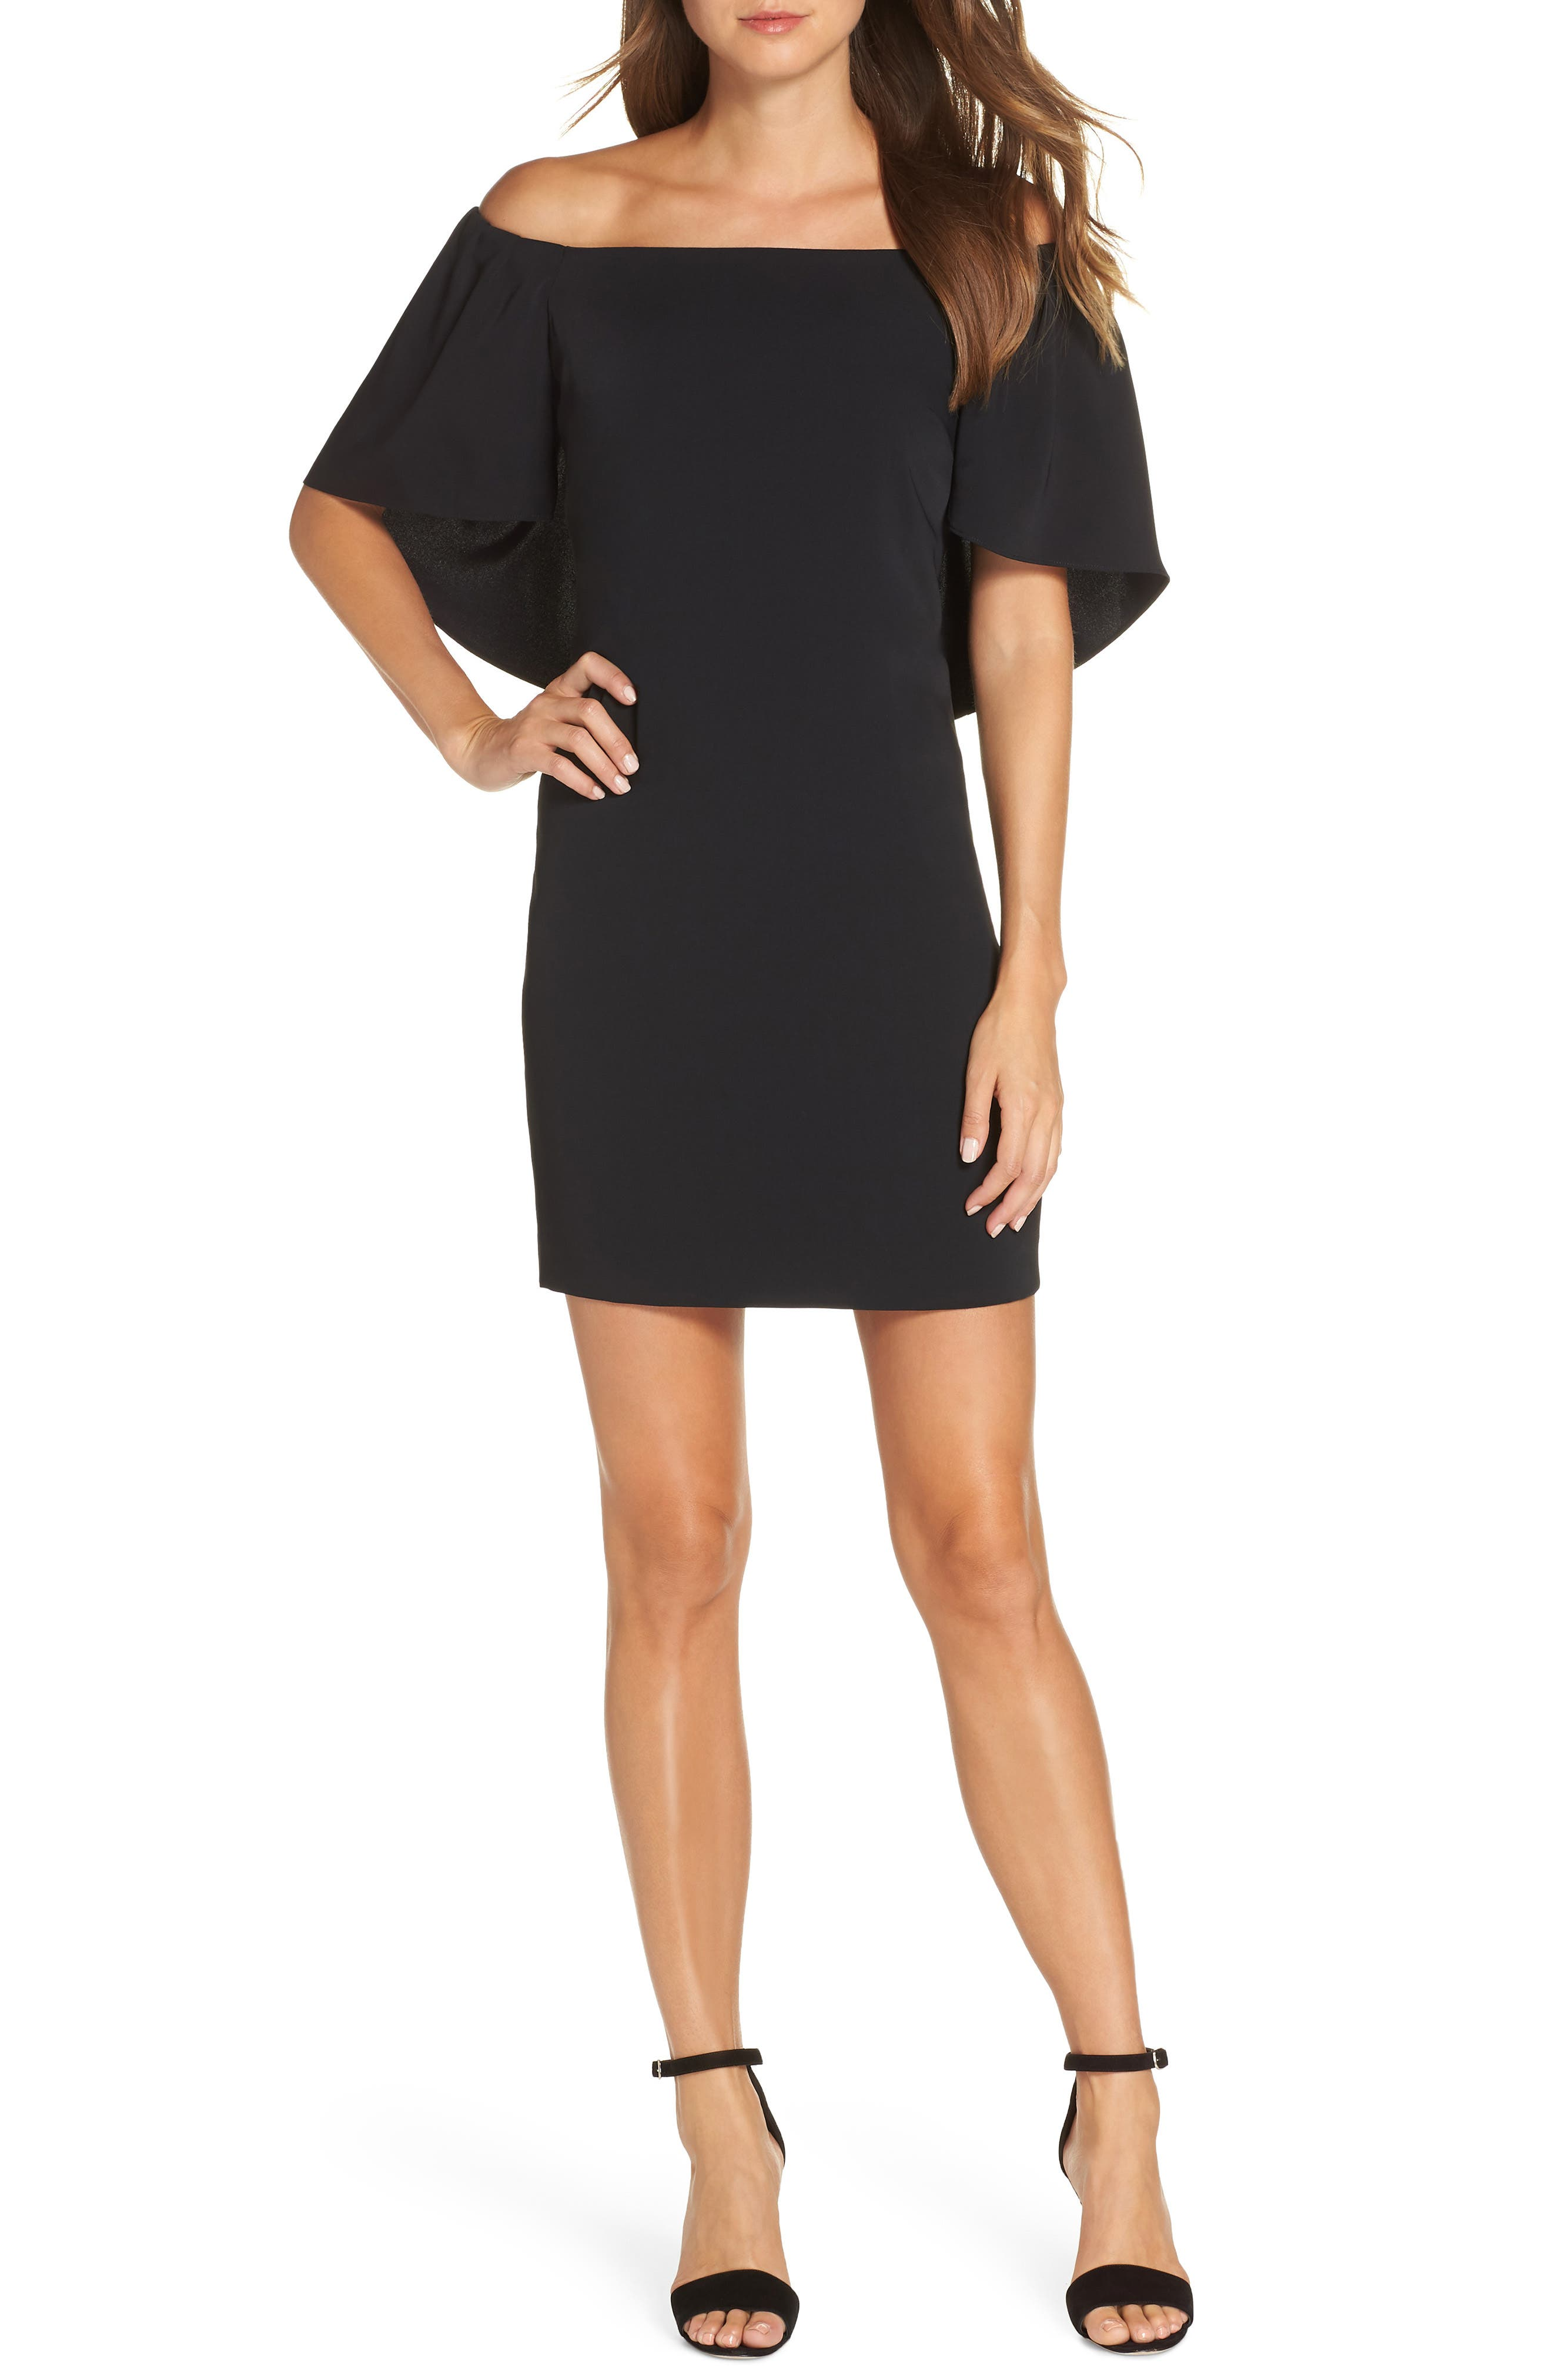 TRINA TRINA TURK Zeal Off the Shoulder Dress, Main, color, 001